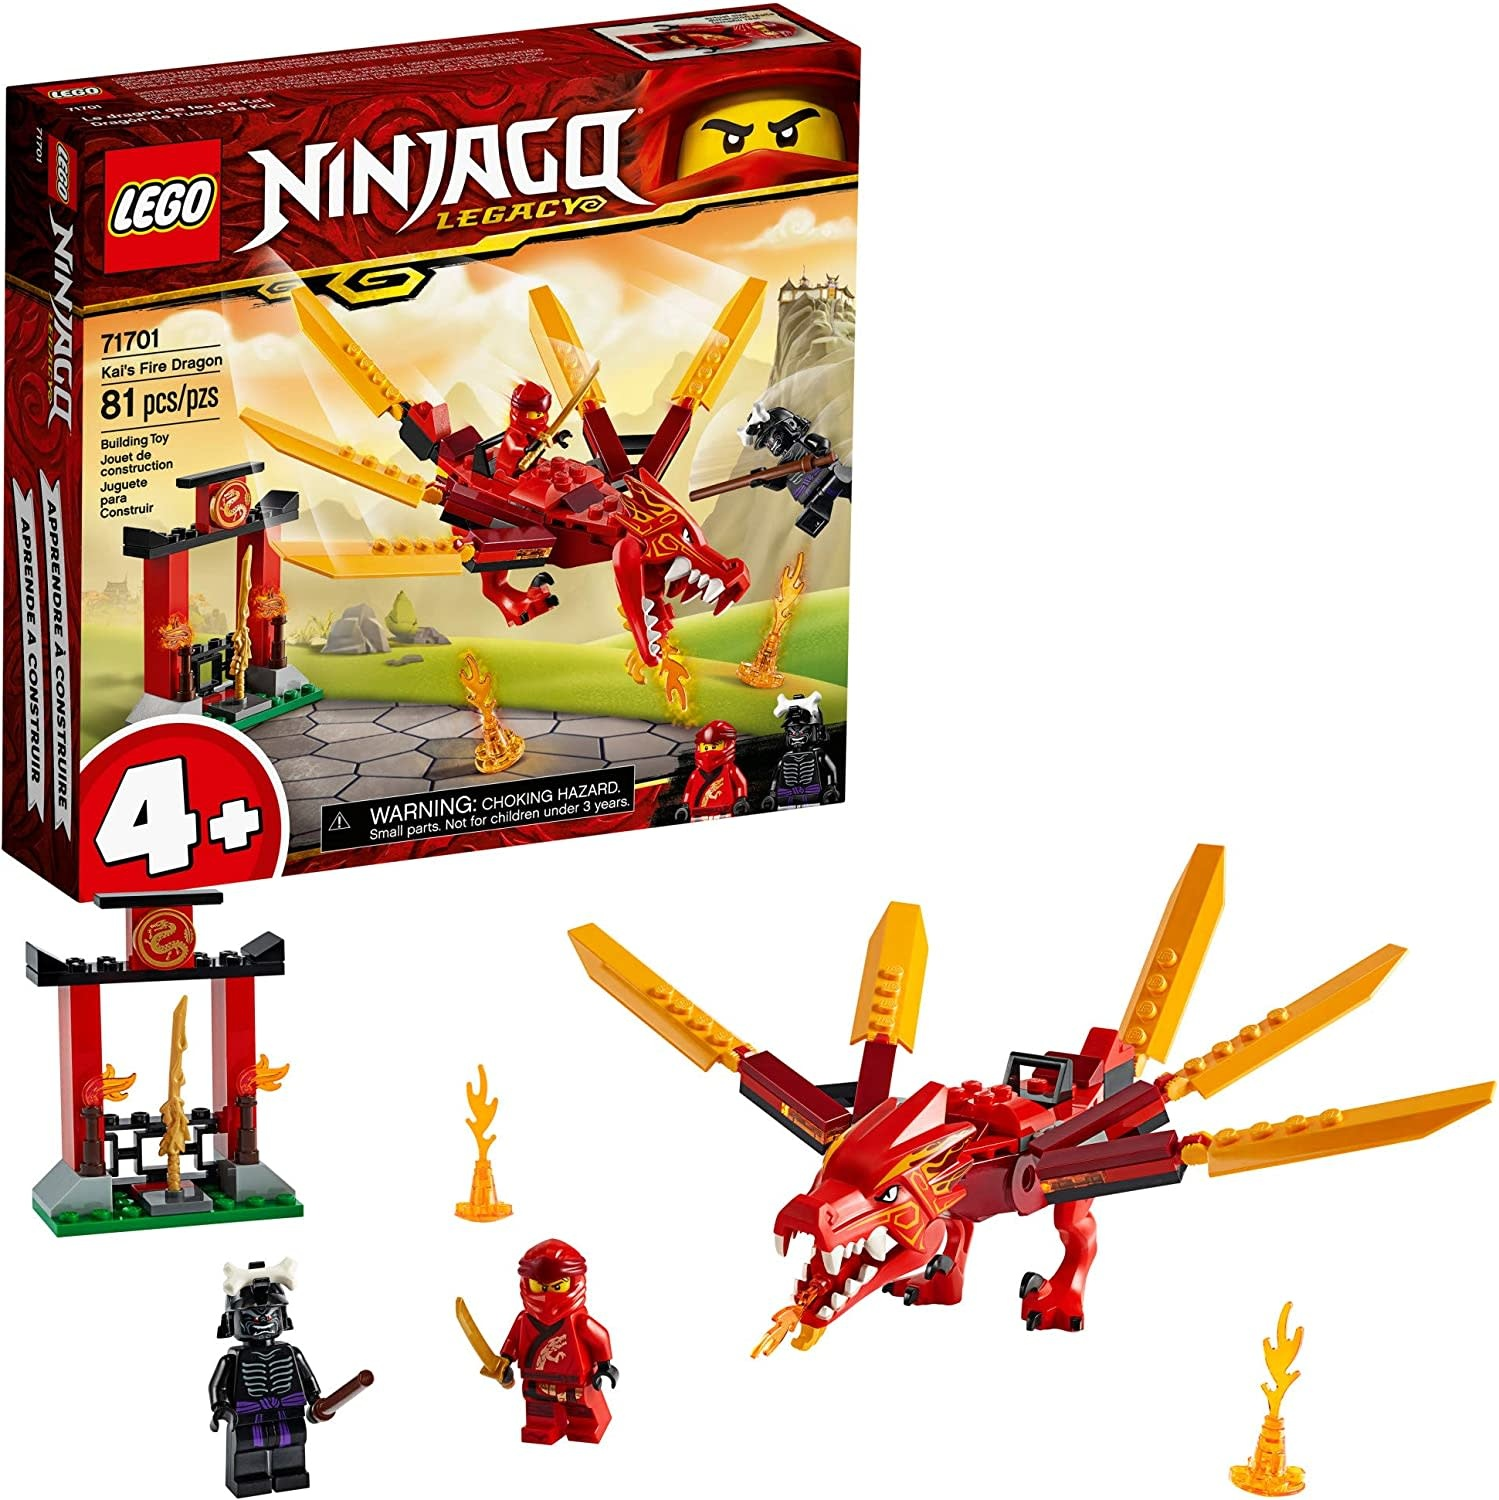 71701 Kai's Fire Dragon by LEGO Ninjago